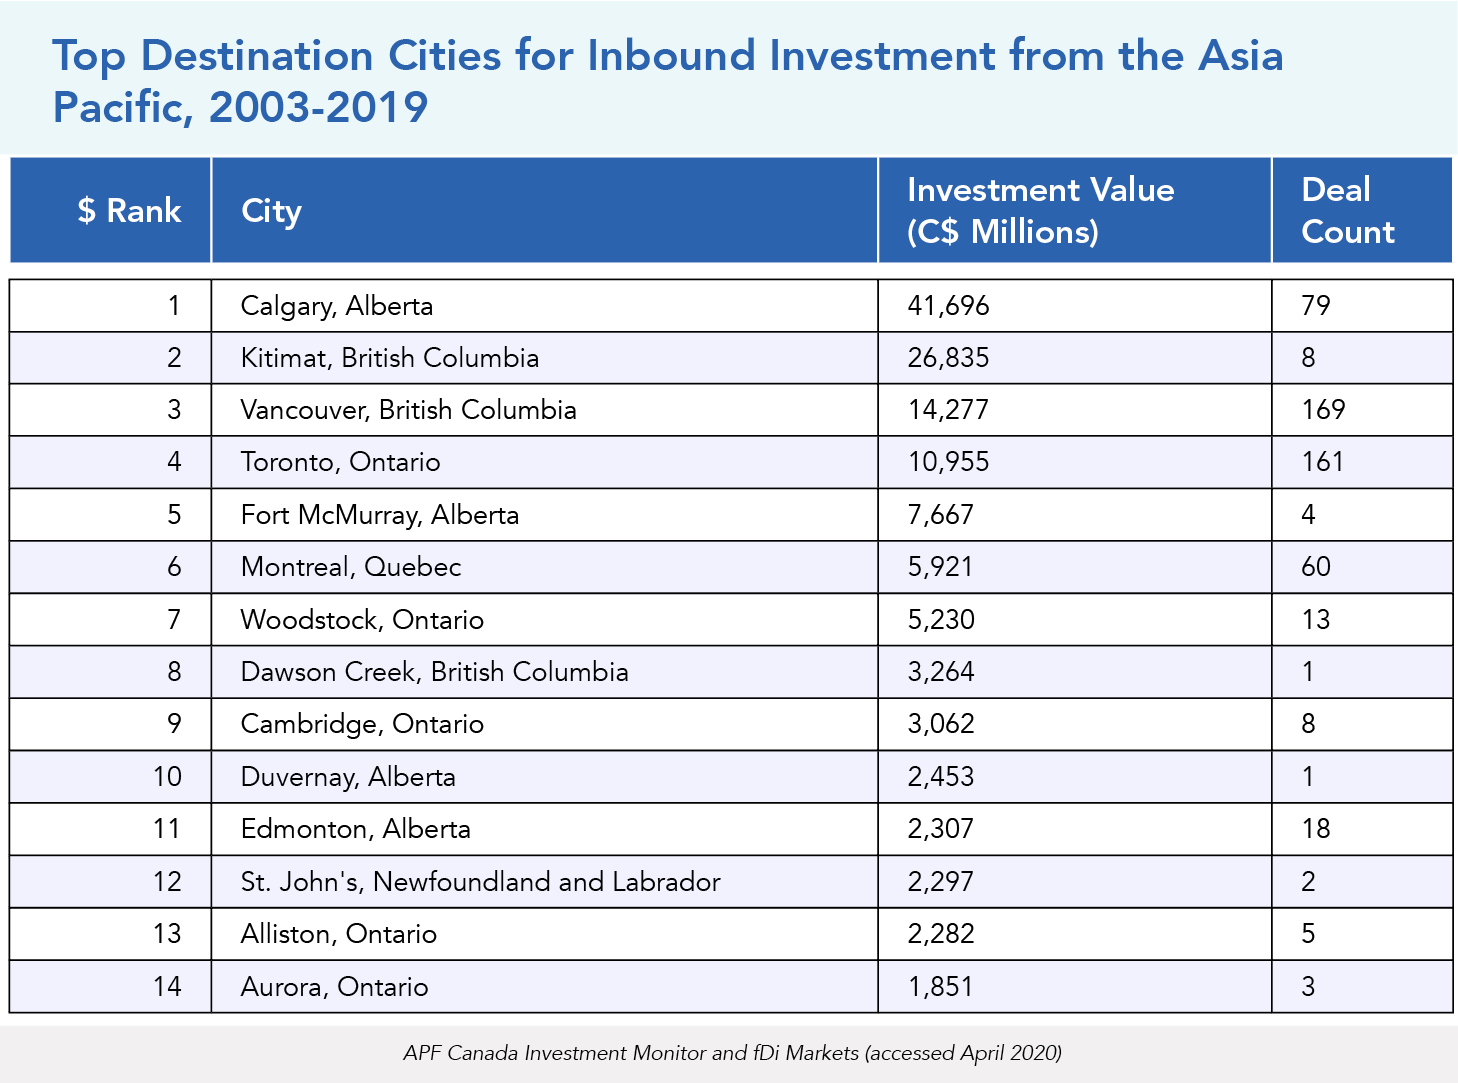 Top Destination Cities for Inbound Investment from the Asia Pacific, 2003-2019